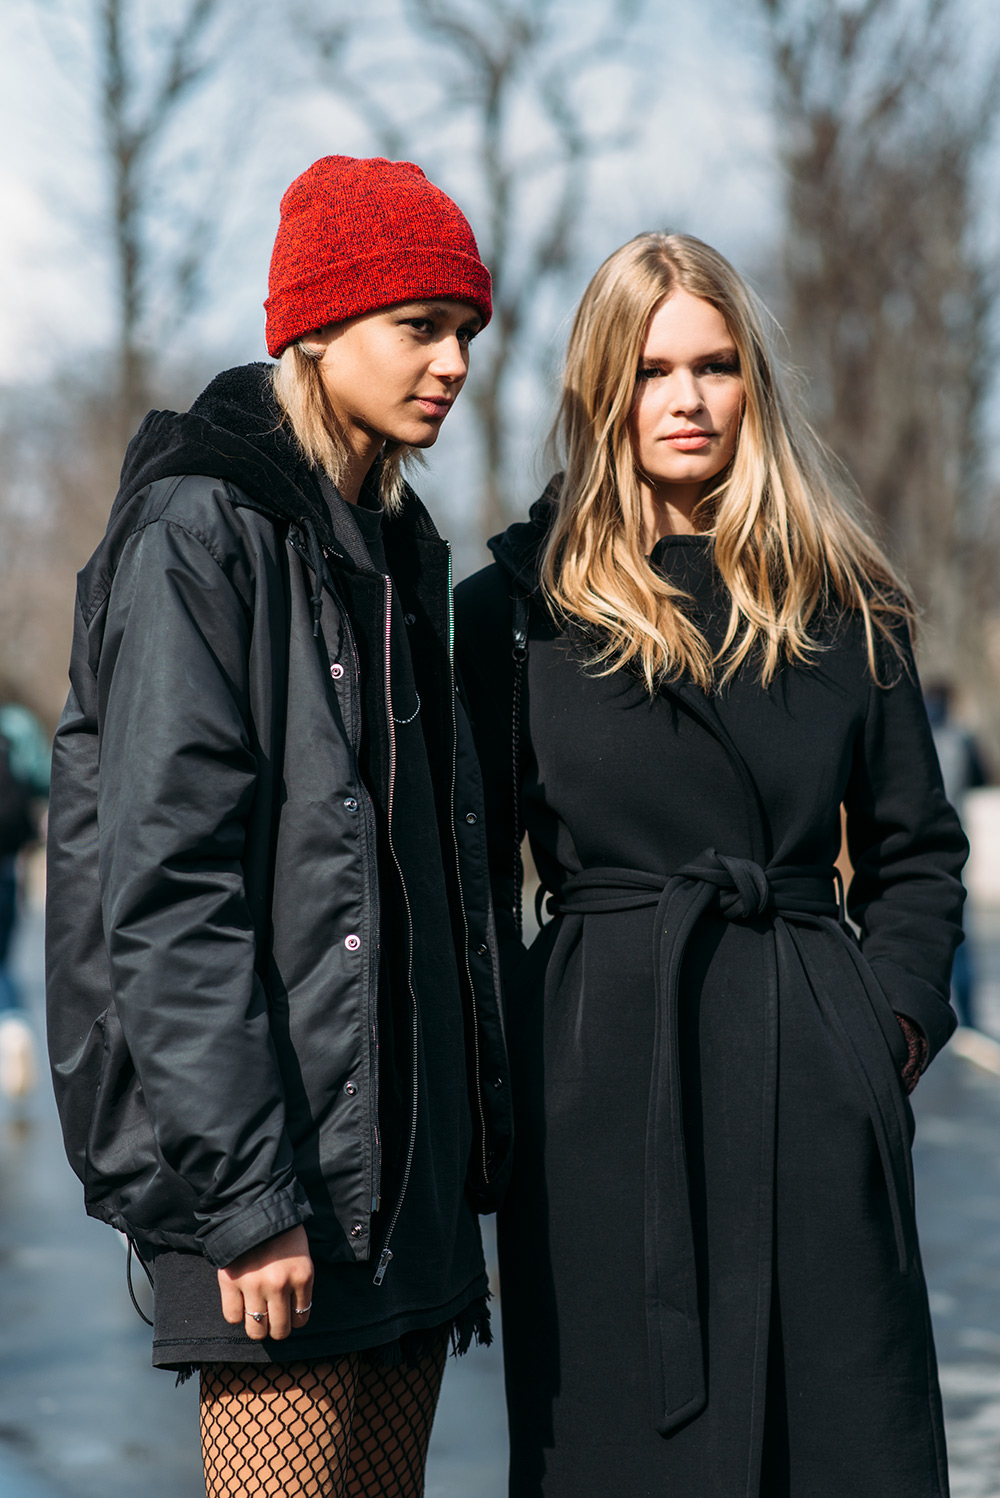 Paris Fashion Week Streetstyle by The Petticoat -Anna Ewers and Binx Walton after Chanel Show Paris Grand Palais PFW